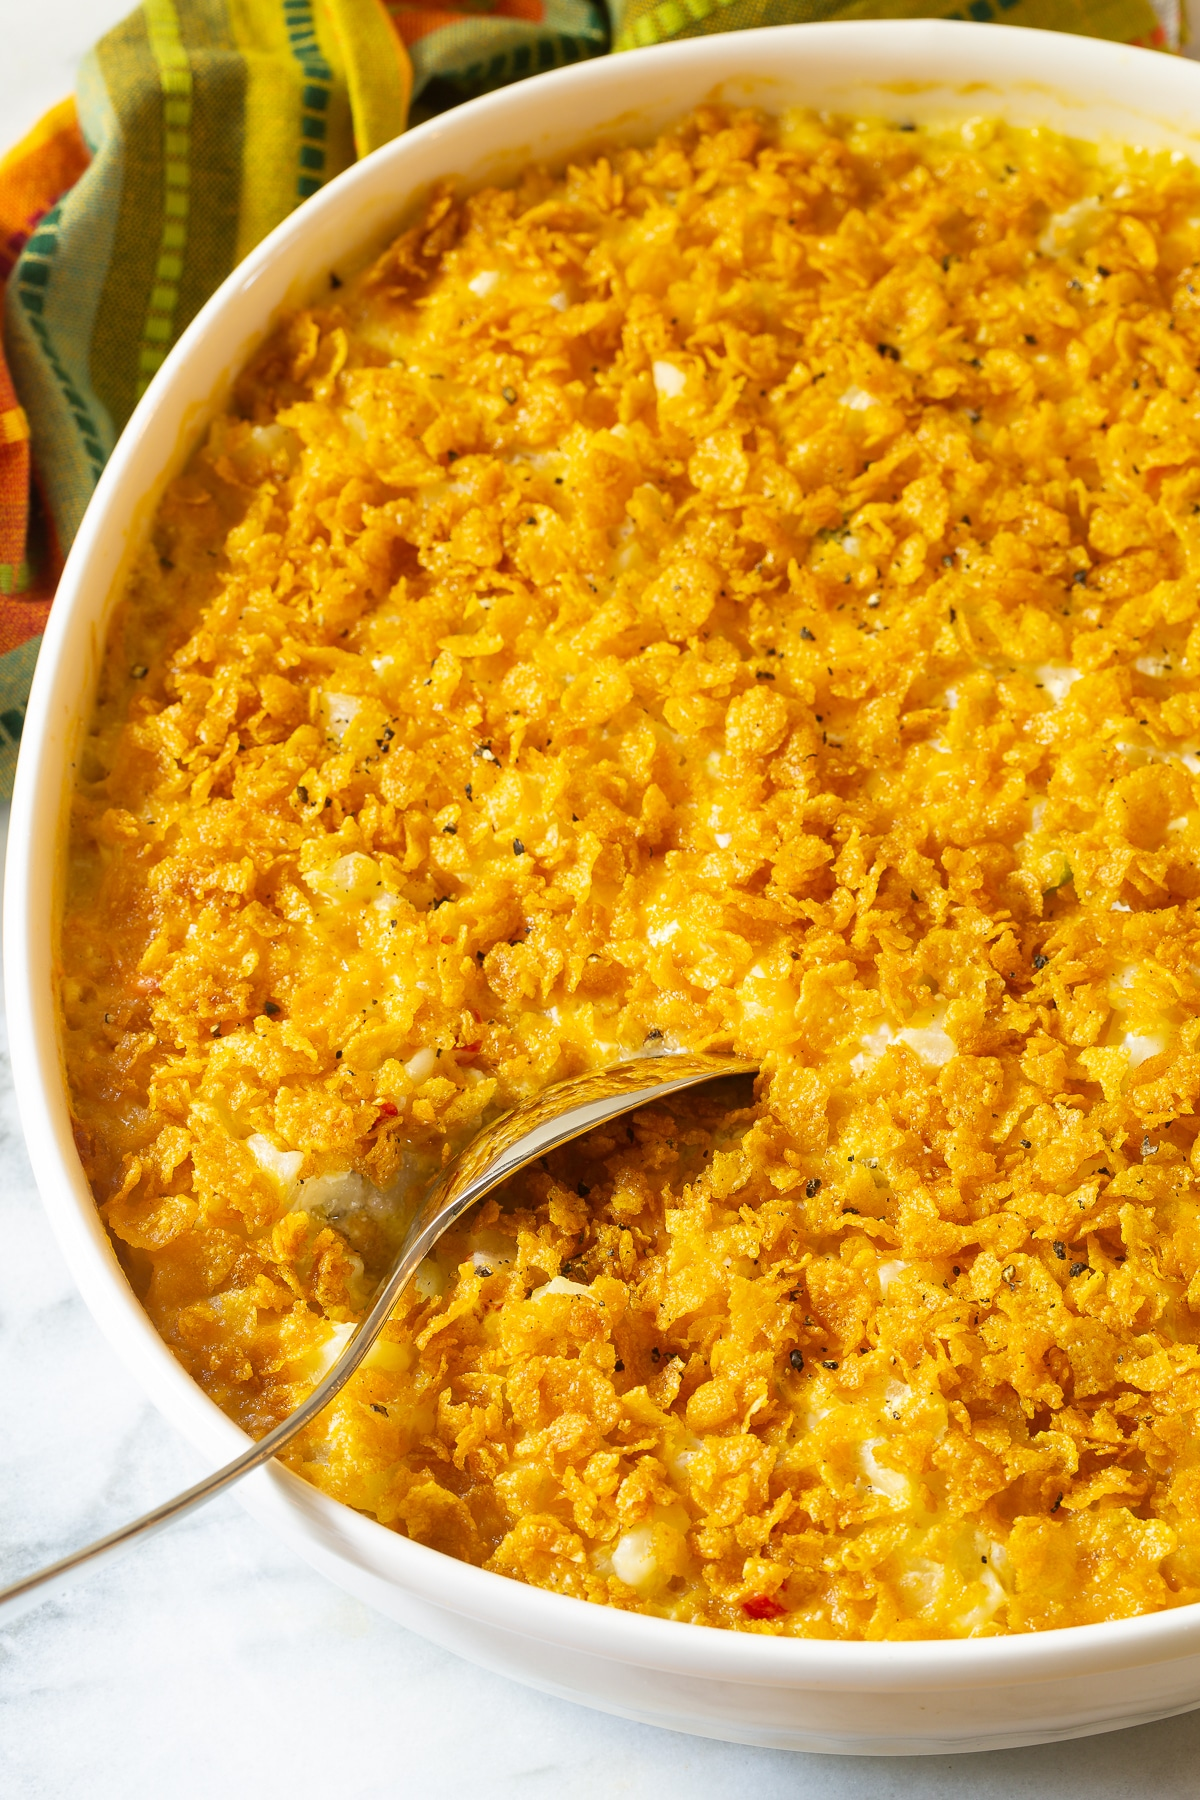 7-Ingredient Funeral Potatoes Recipe #ASpicyPerspective #potato #potatoes #funeral #company #hashbrowns #casserole #baked #holiday